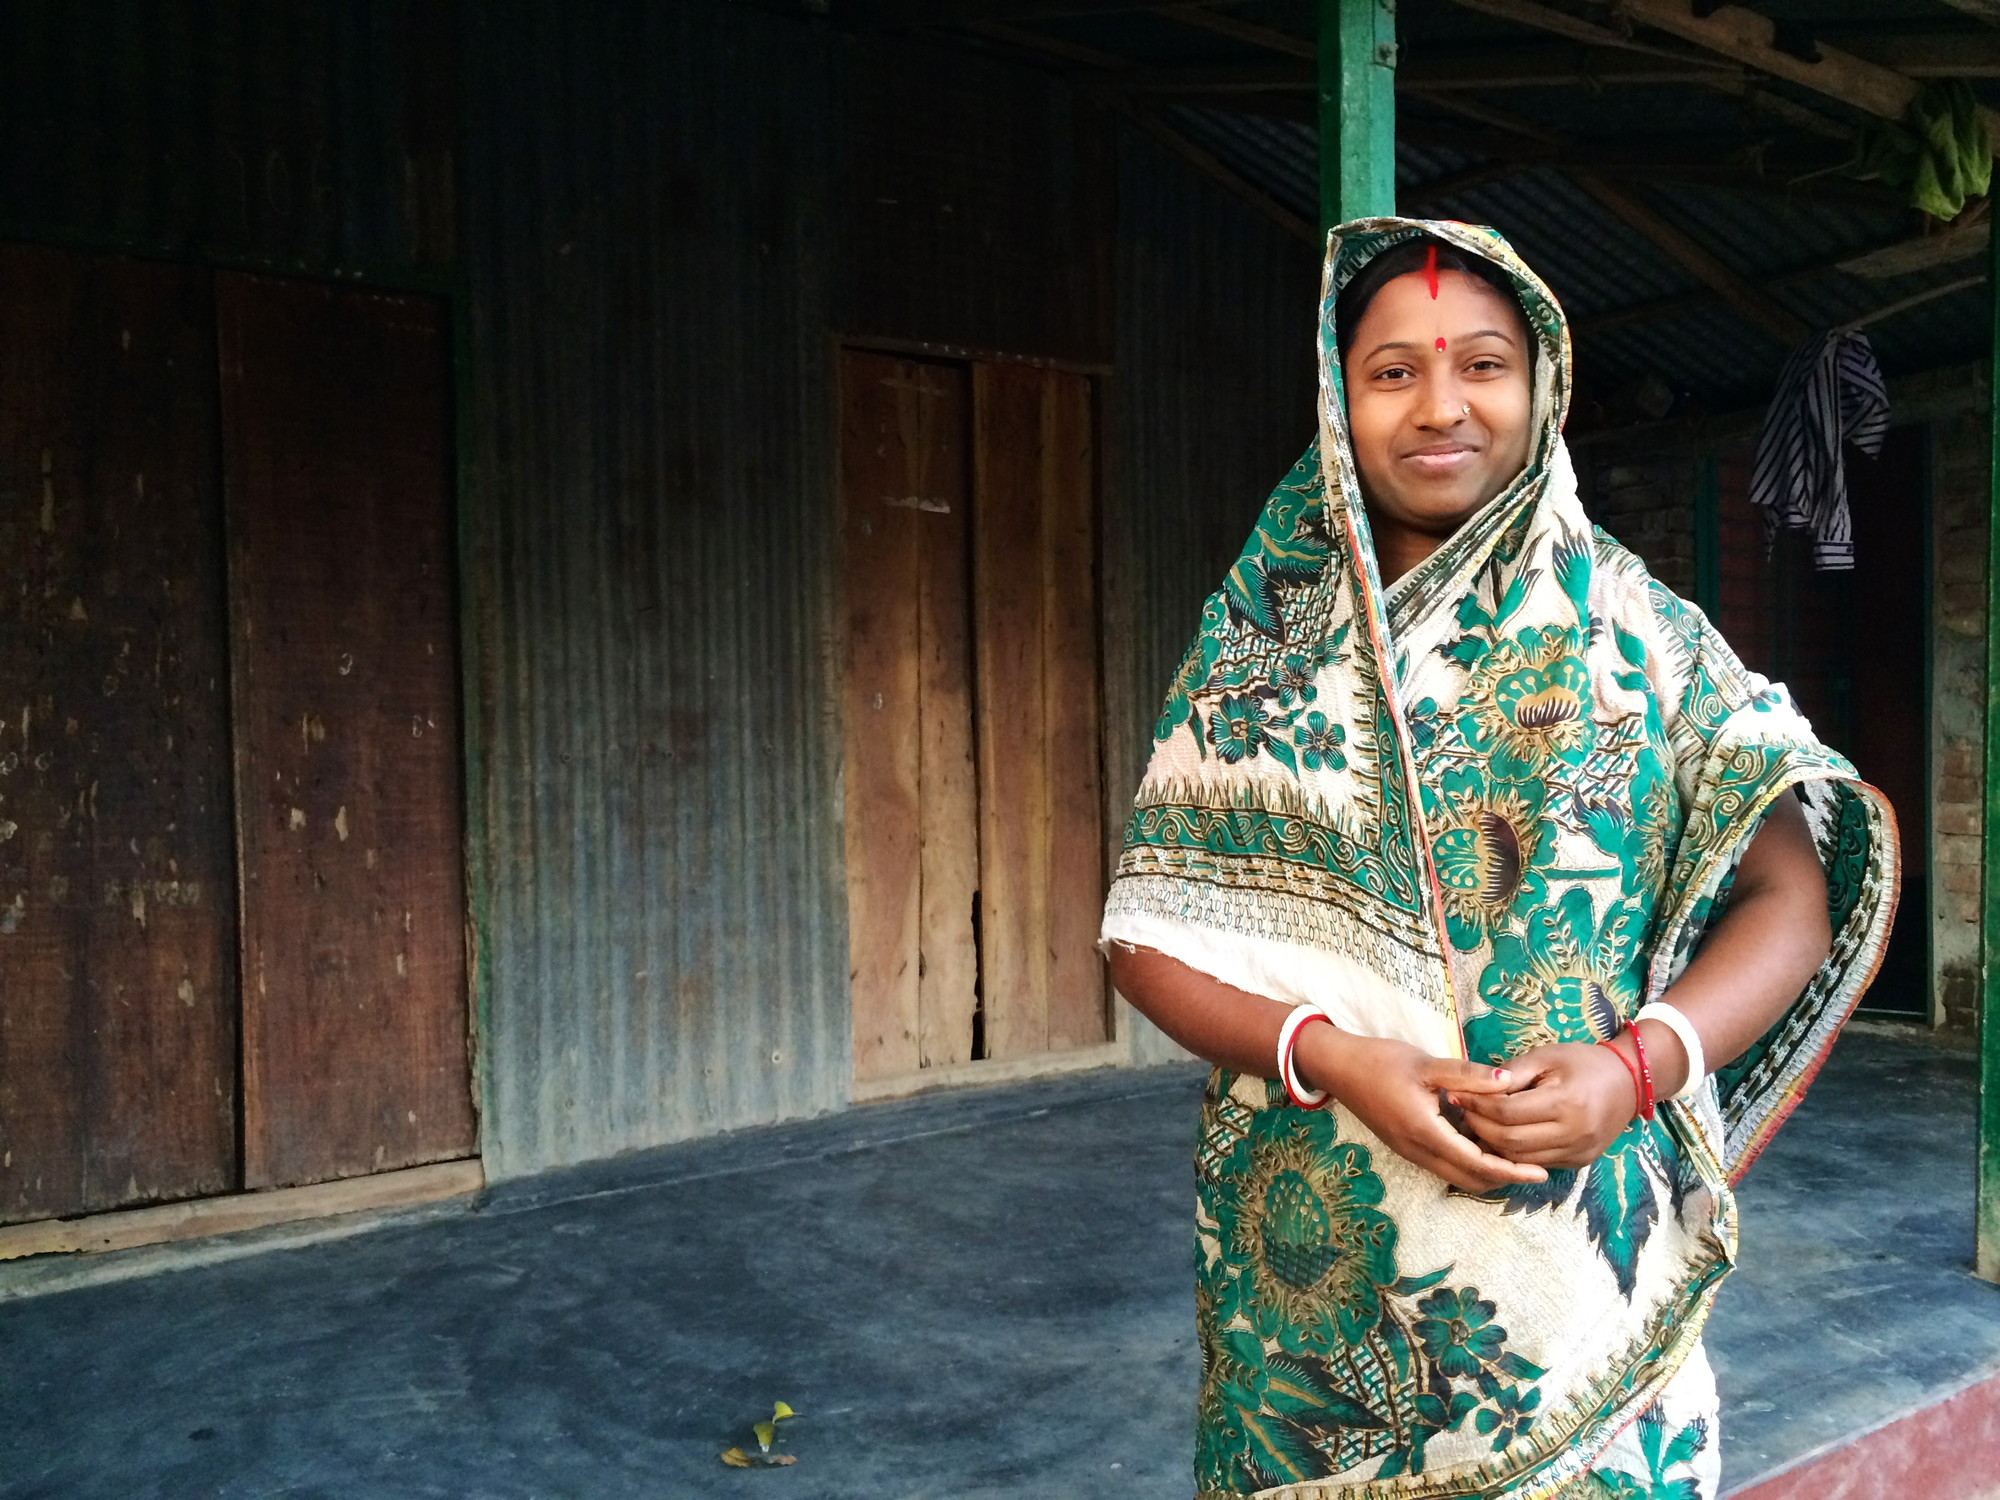 ARCHIVE Global Sets Out to Build Healthier Homes in Bangladesh , A women in the village of in Savar, Bangladesh stands in front of her family's new cement floor ARCHIVE, in partnership with ADESH, installed in February 2014. Image Courtesy of ARCHIVE Global